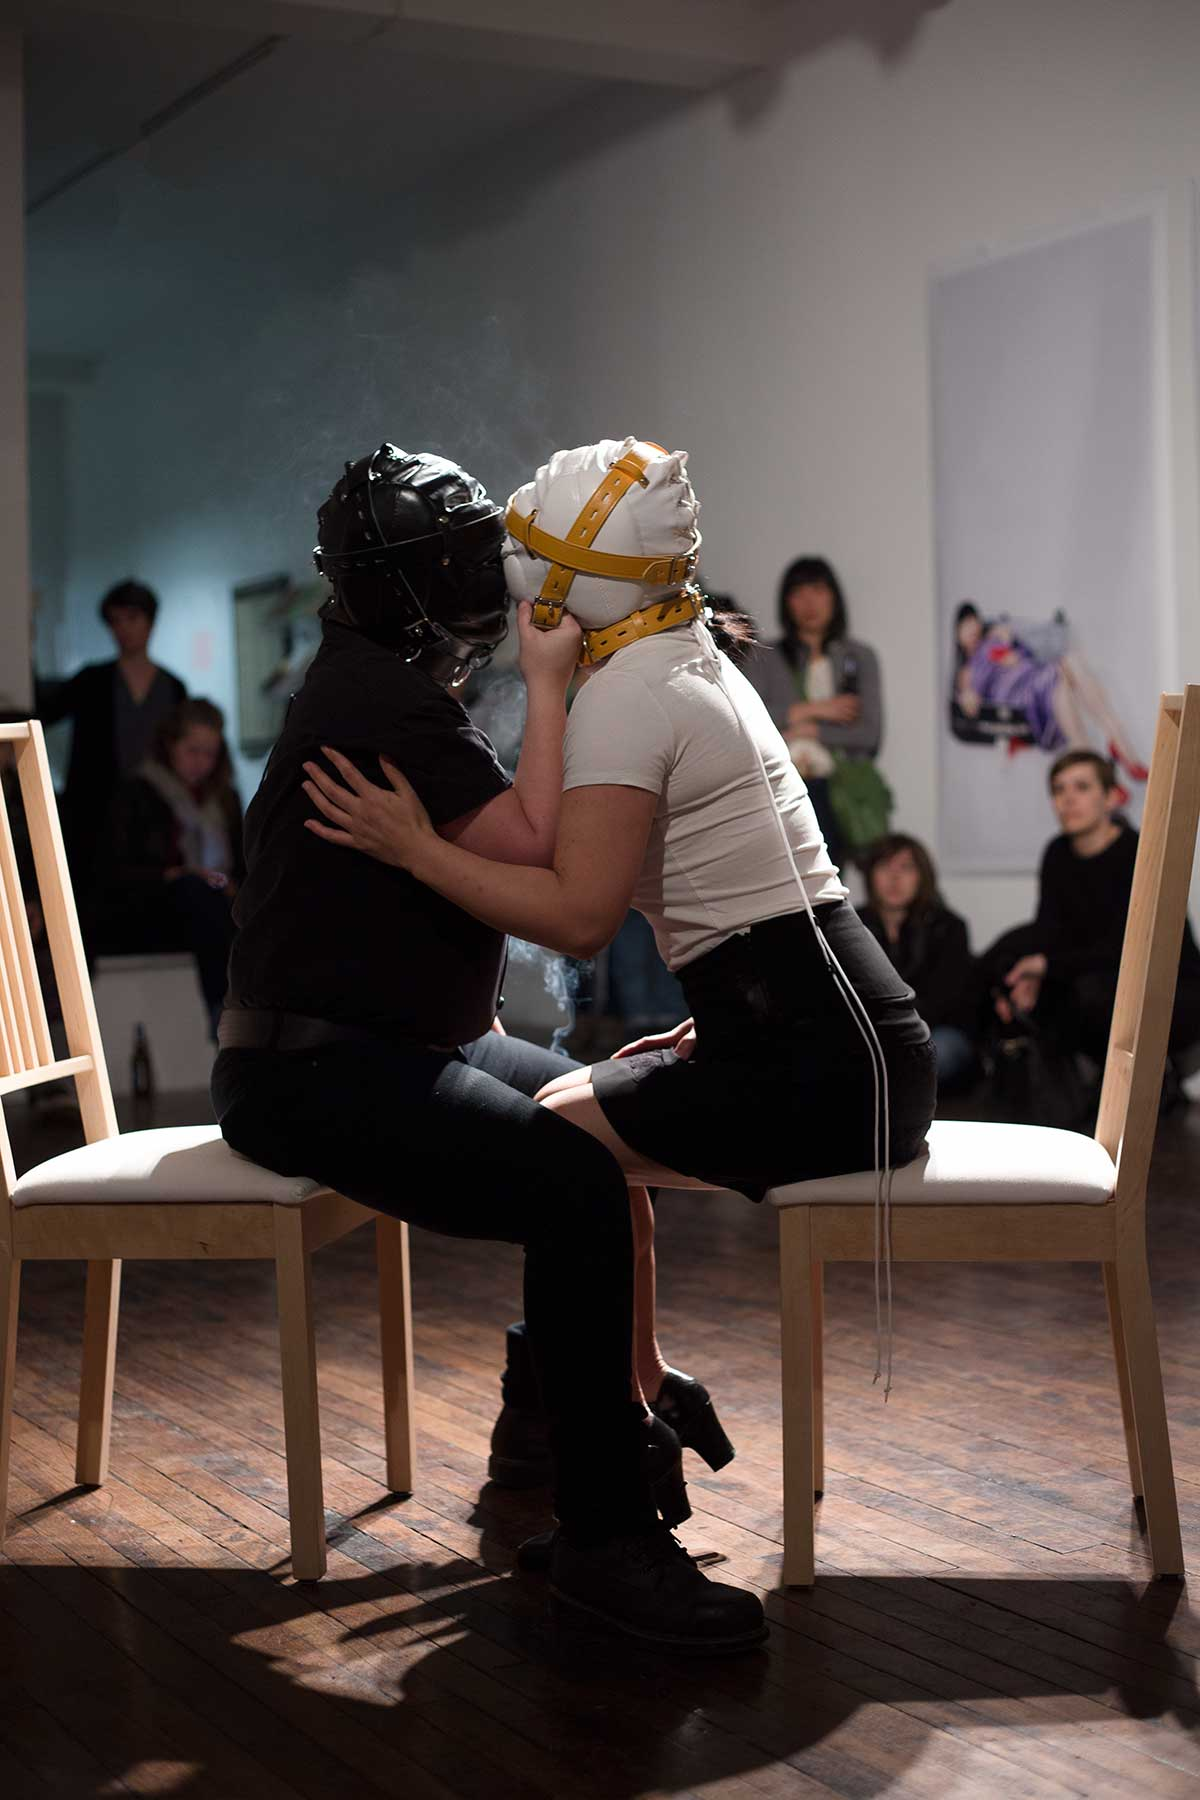 Chun Hua Catherine Dong performs at Articule Montreal: two girls kiss each other while wearing masks